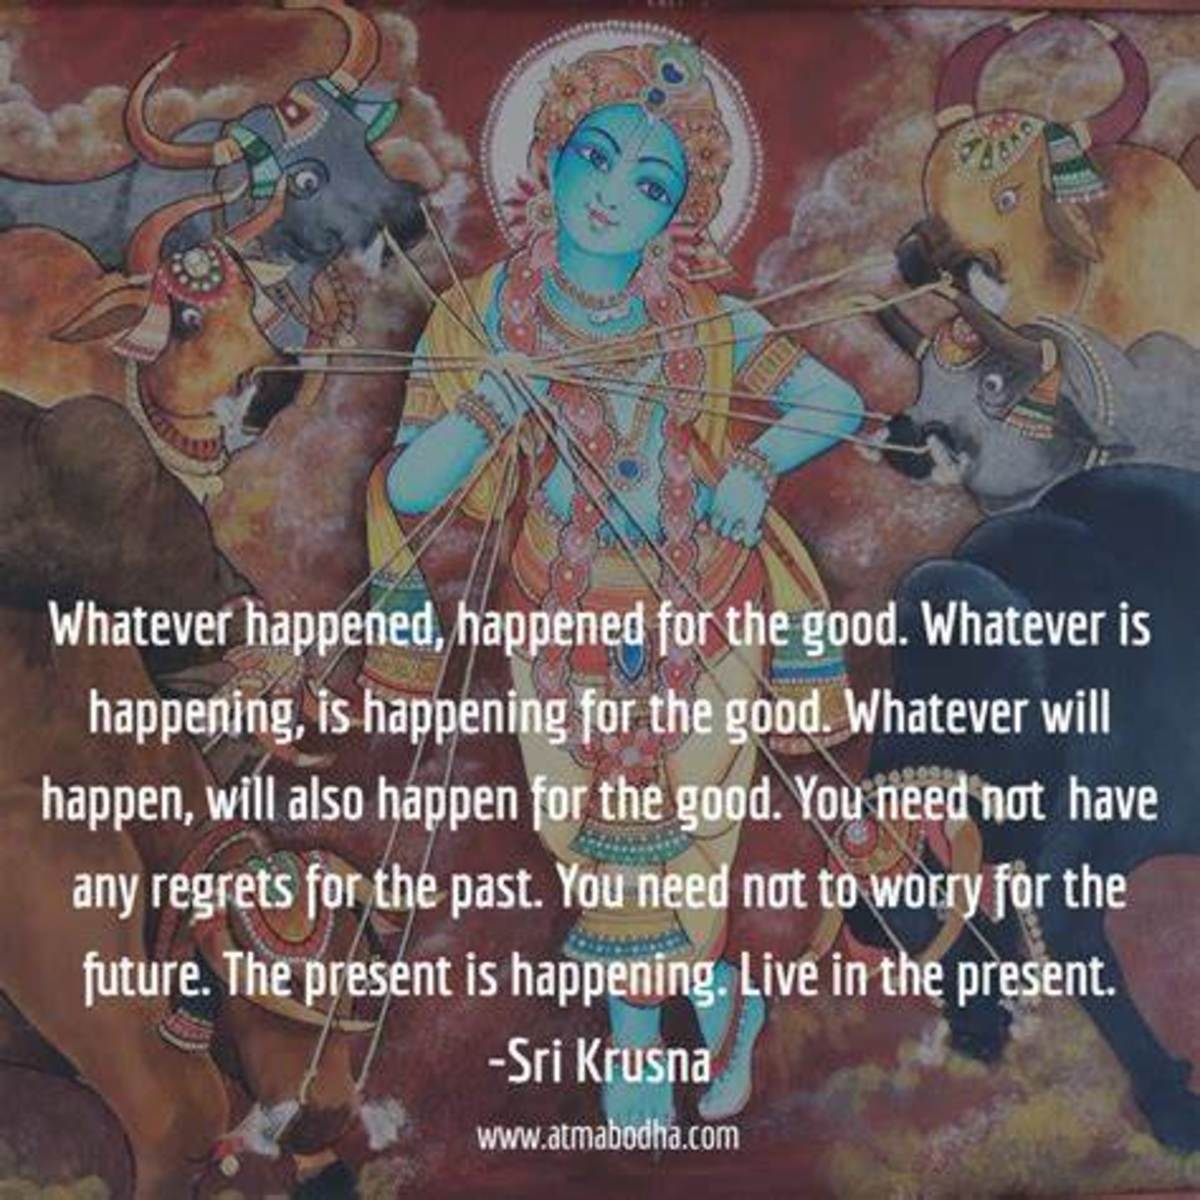 A Glimpse Into The Bhagavad Gita. Part 3 (The Song Celestial) Monday's Inspiration 60